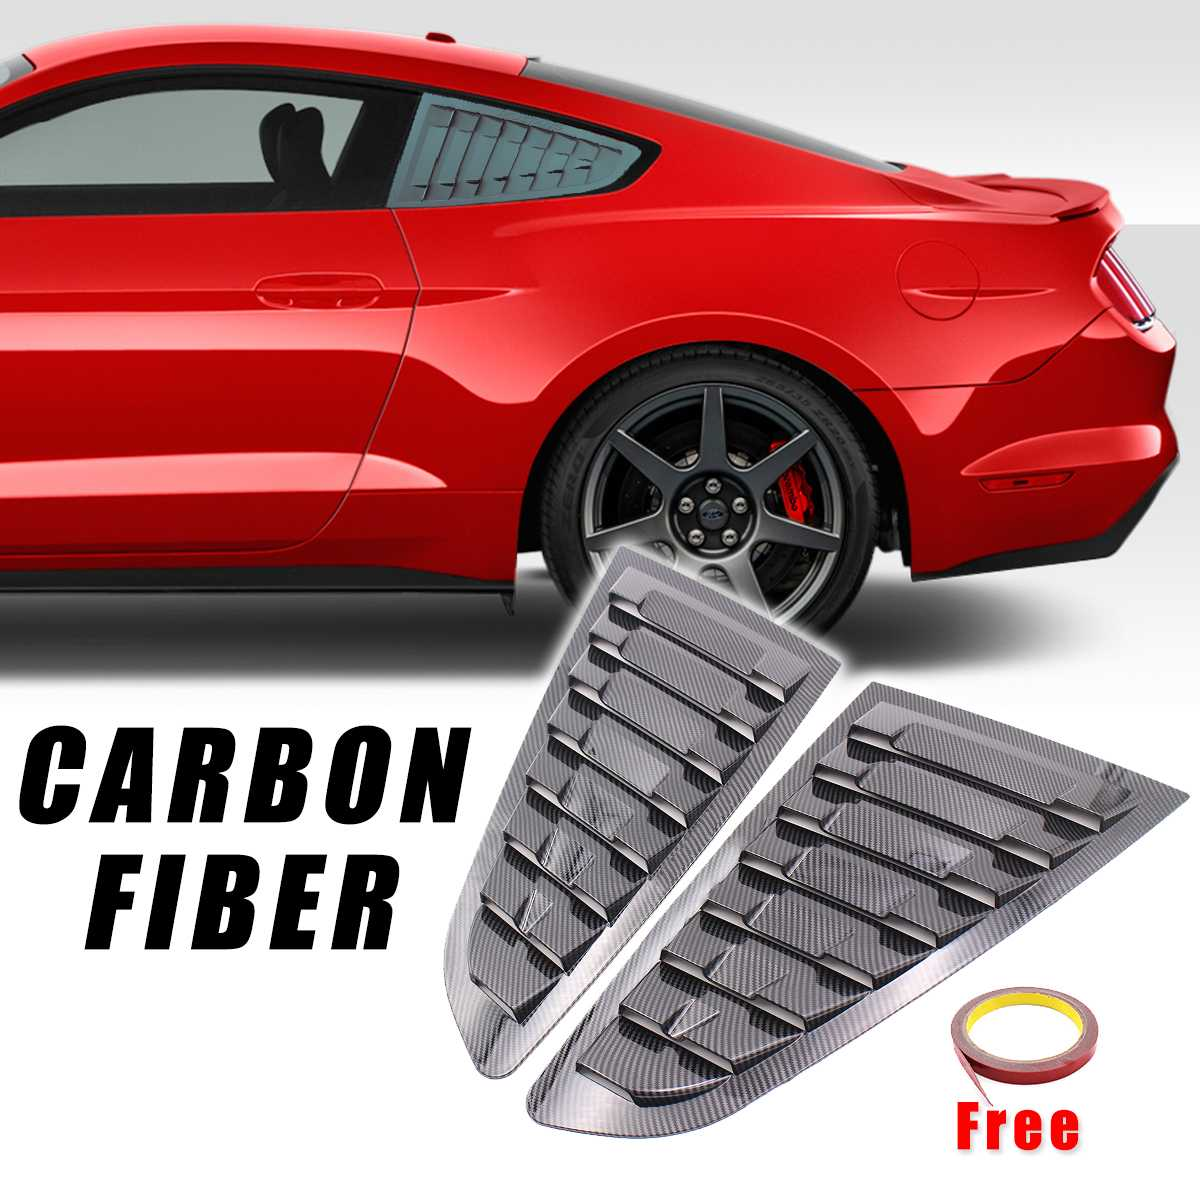 2Pcs Carbon Fiber Color Rear Quarter Panel Window Side Vent Louvers Shield Sticker For <font><b>Ford</b></font> For <font><b>Mustang</b></font> <font><b>2015</b></font> 2016 2017 2018 2019 image